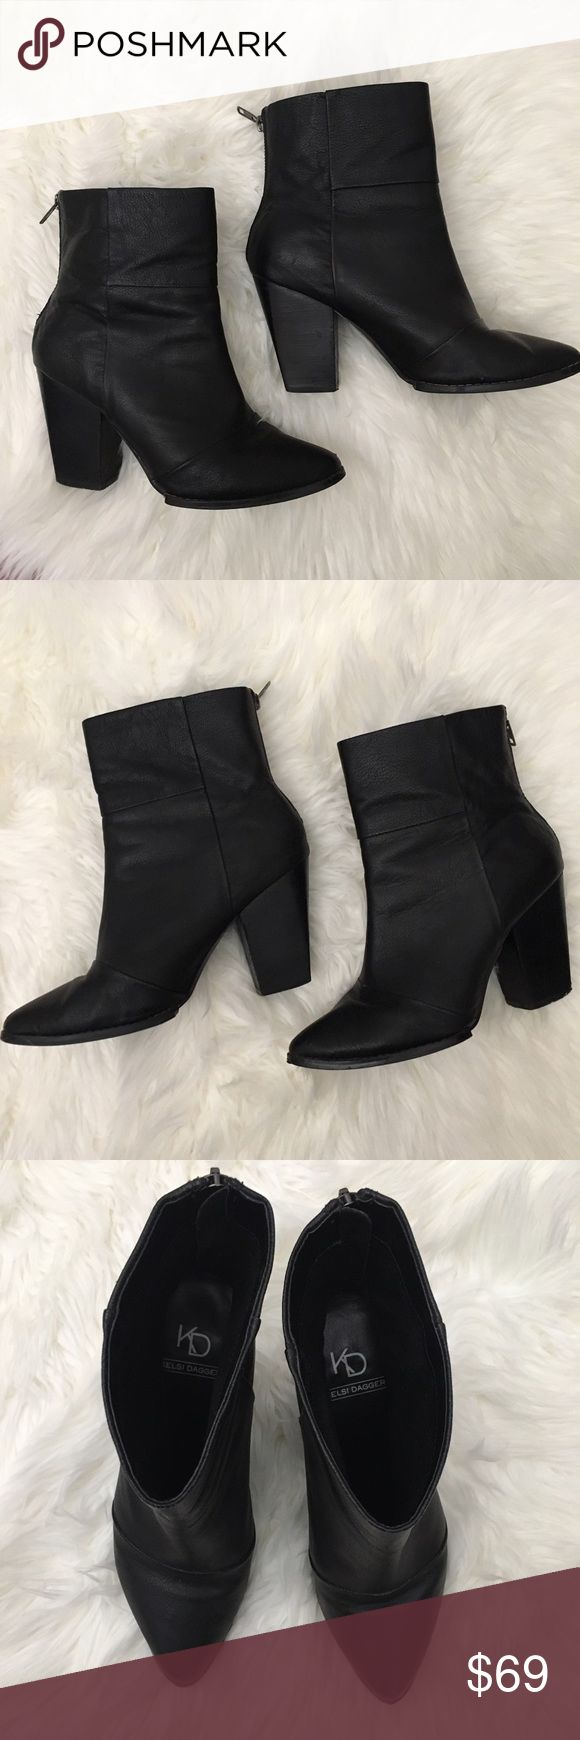 Kelsi Dagger Zidane Leather Black Boots These boots look amazing and are very comfortable. They have been used but have lots of life left. There are some scuffs here and there but nothing a buffing can't fix. Offers welcome. Brand is sold at anthro and urban outfitters Urban Outfitters Shoes Ankle Boots & Booties